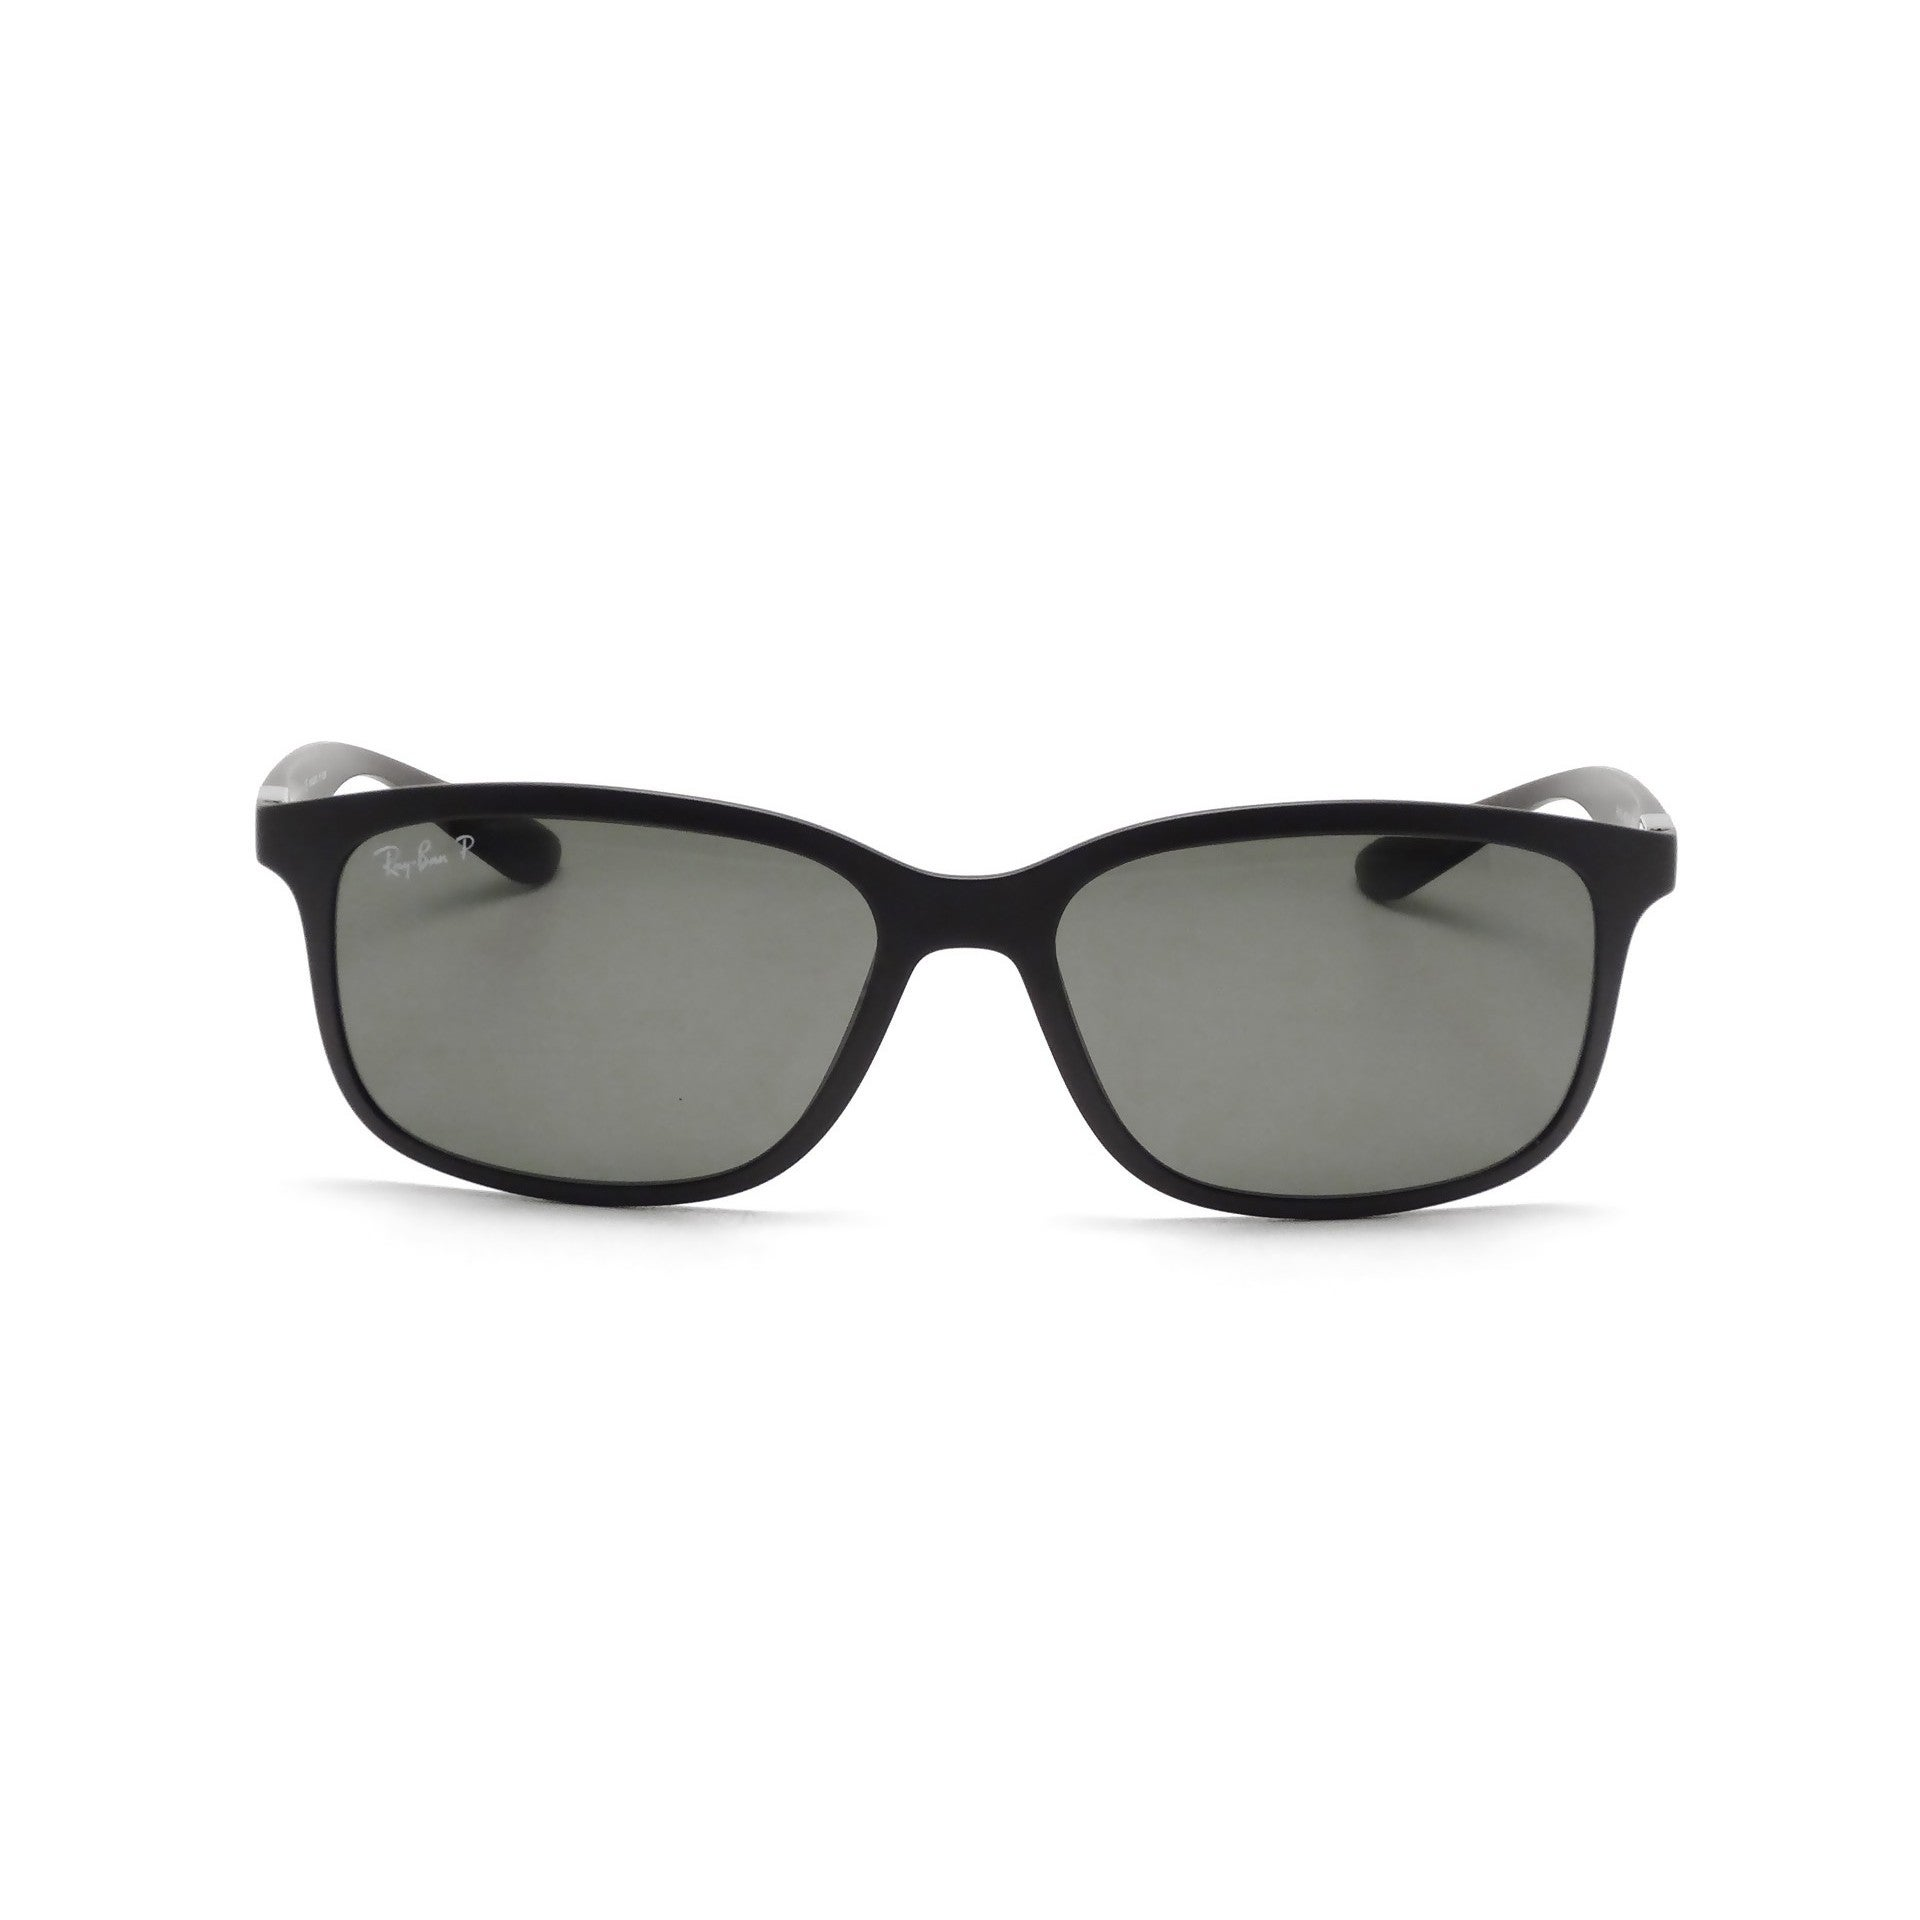 843af12bab5 Shop Ray-Ban RB4215 Liteforce Rectangle Matte Dark Blue Sunglasses - Free  Shipping Today - Overstock - 10332830